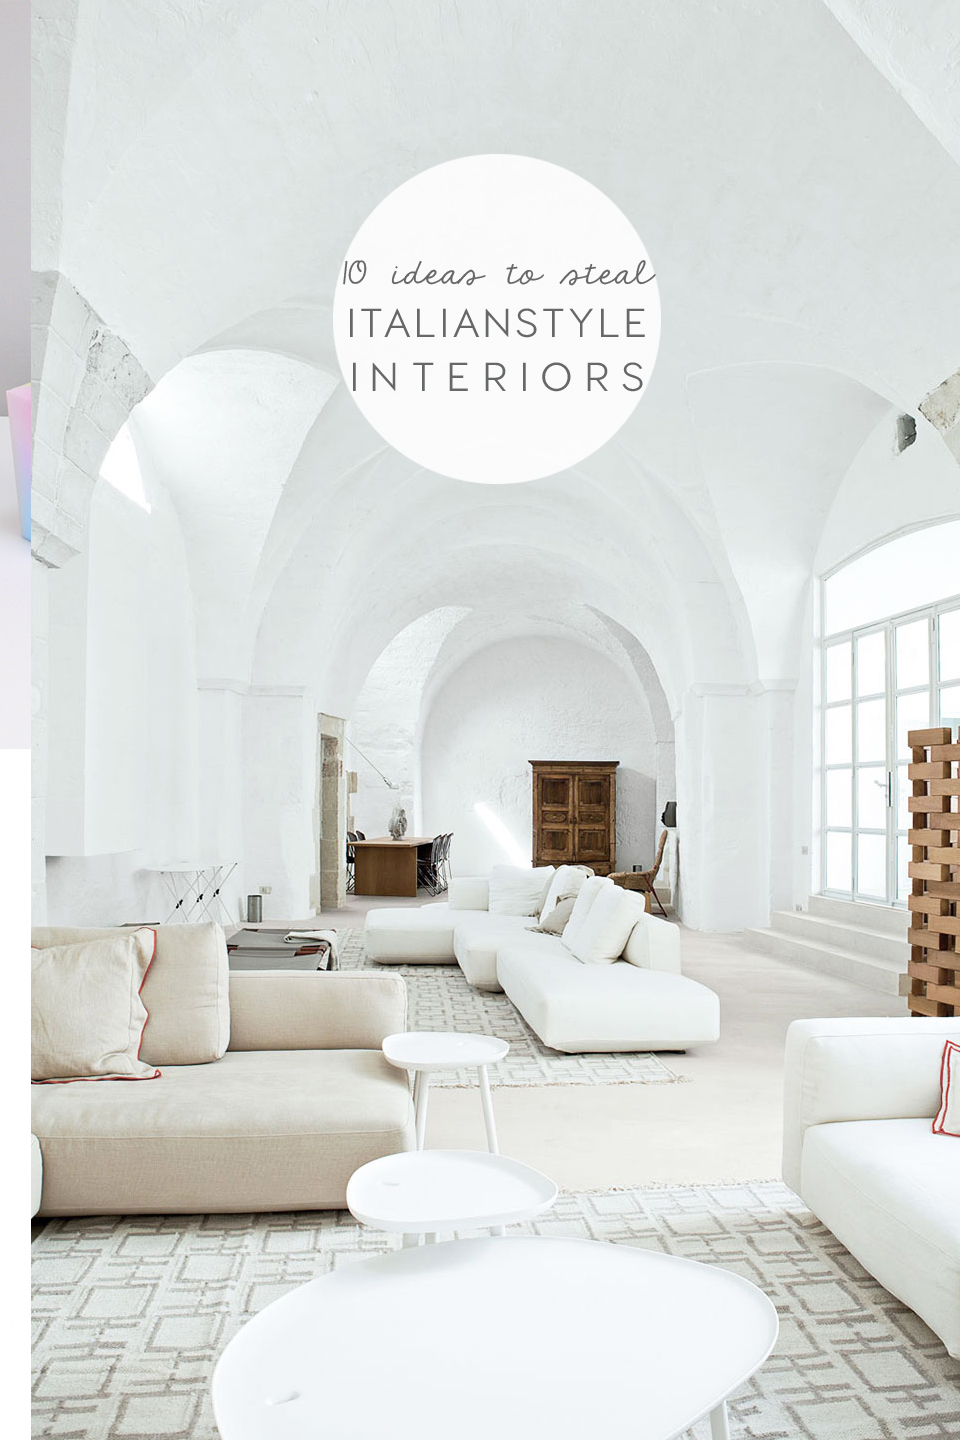 Design Interieur Blog Italian Style Interiors 10 Top Ideas To Steal From Italian Homes